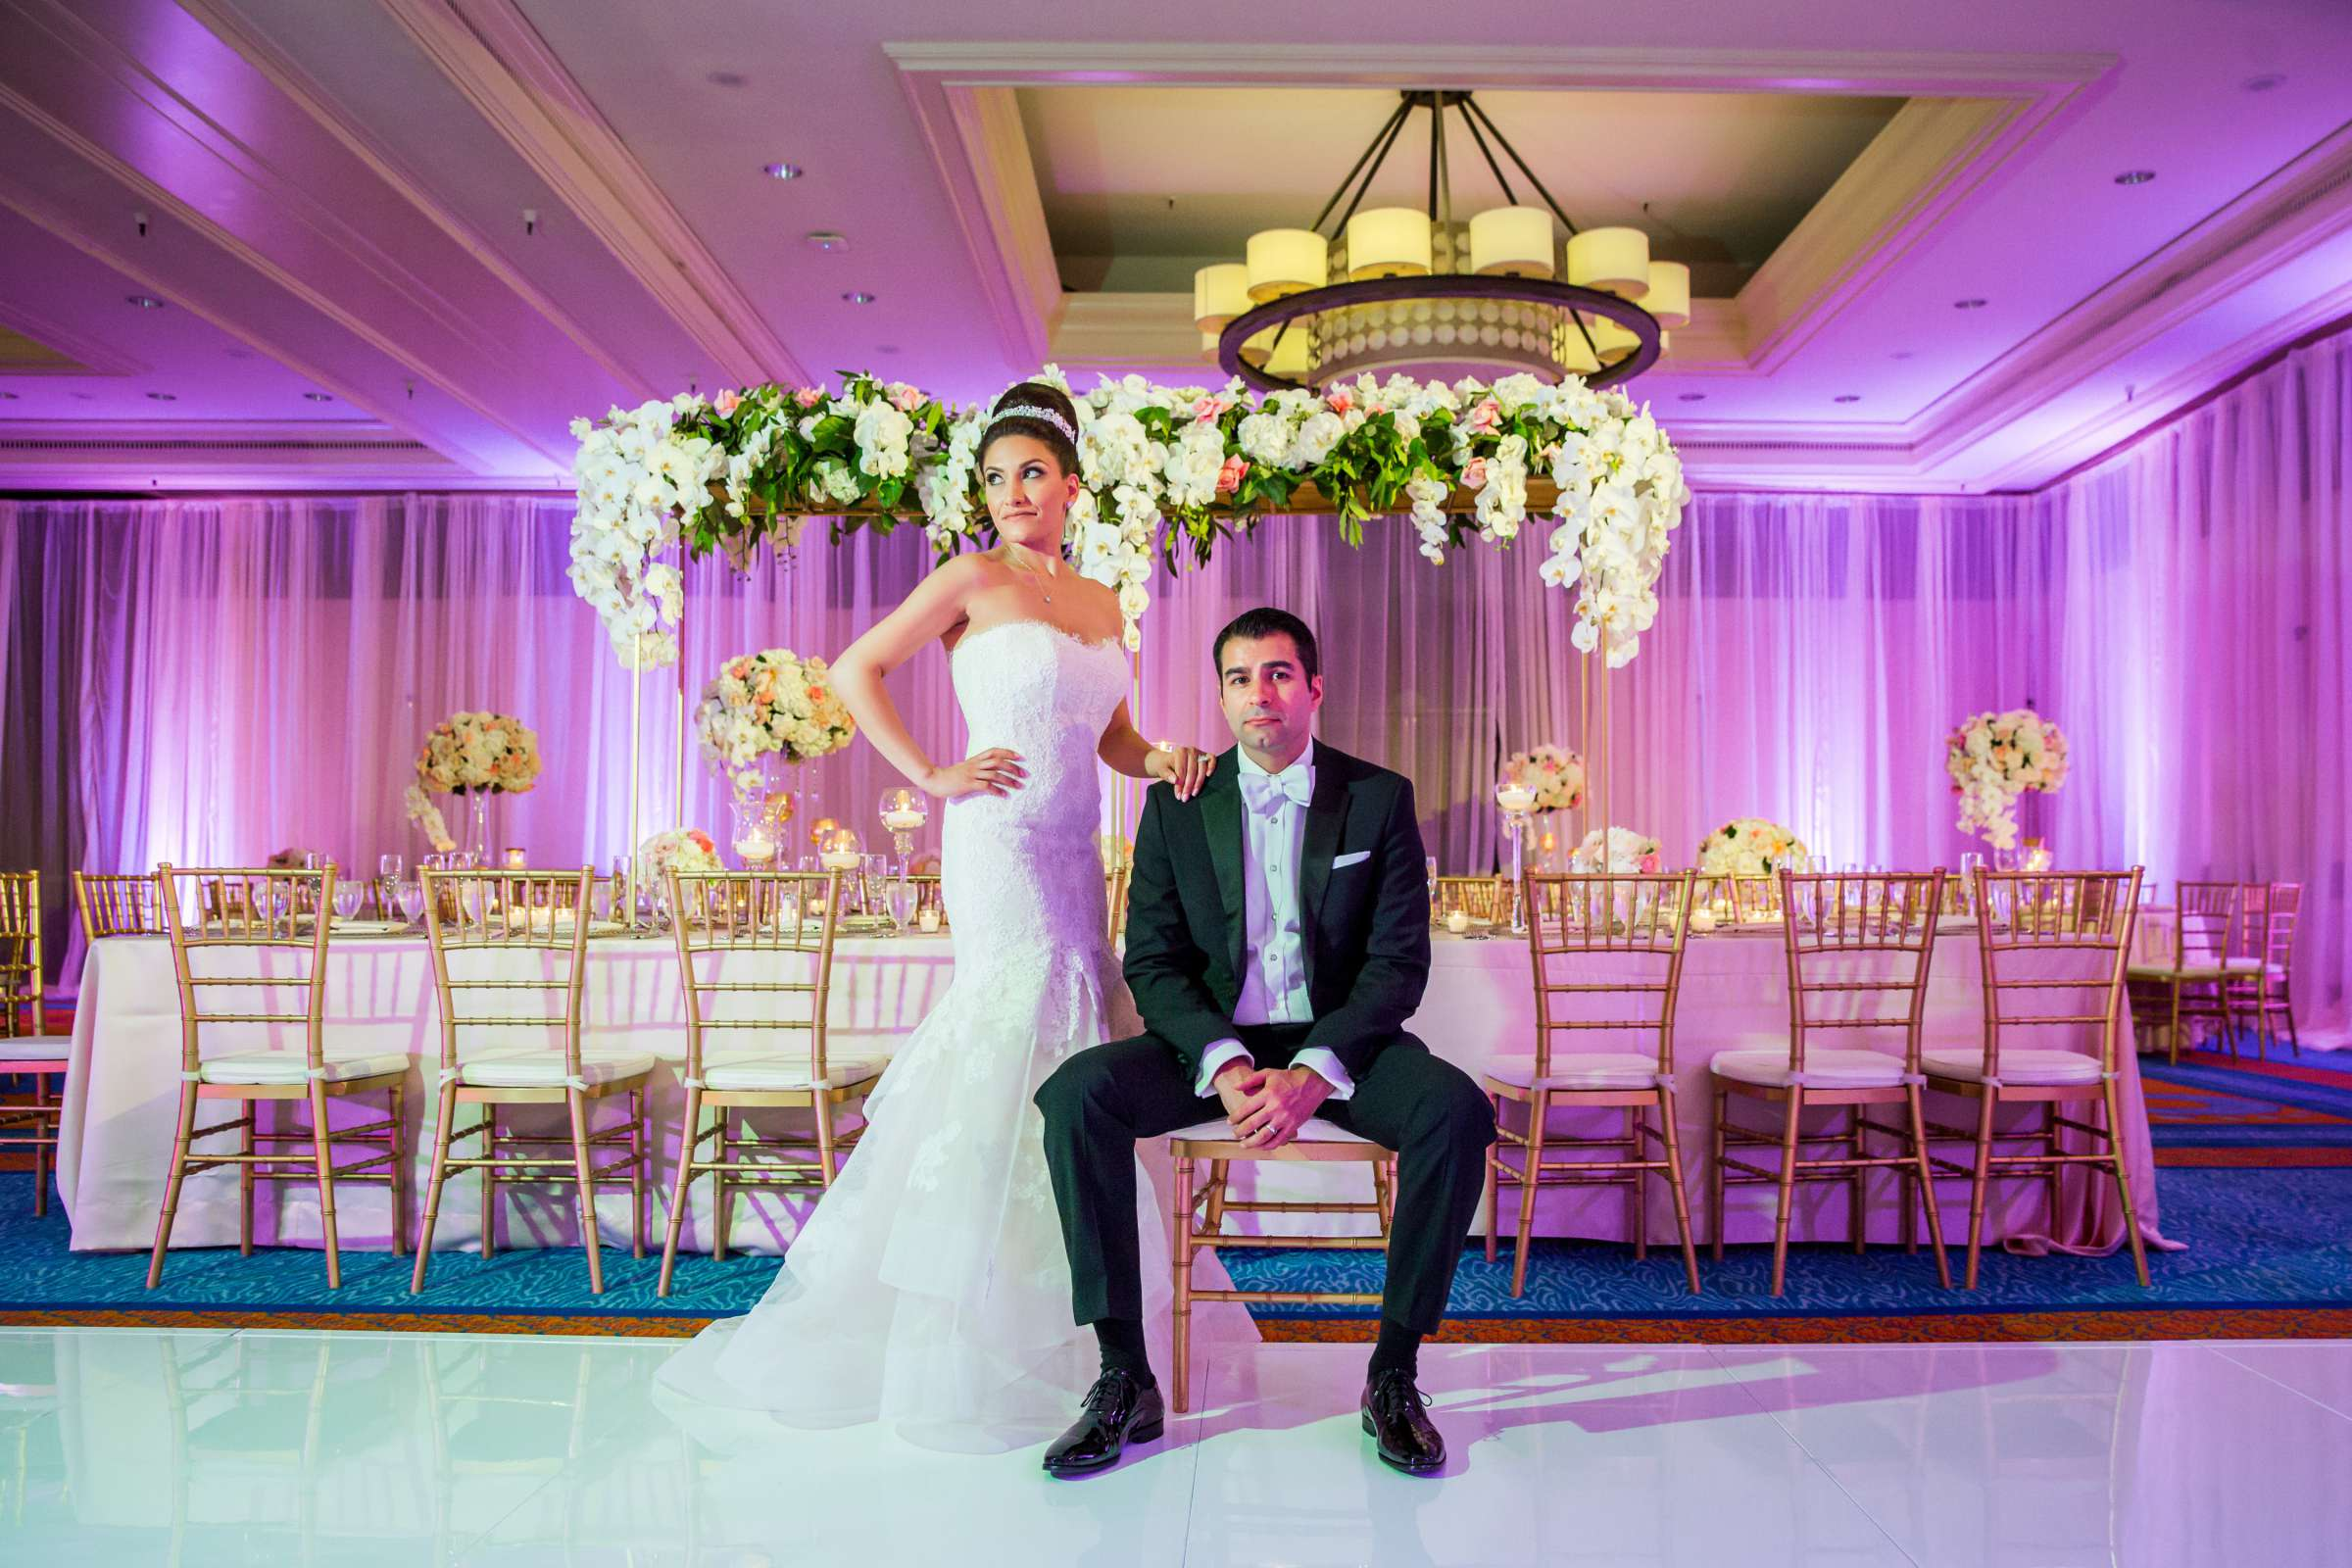 Wedding coordinated by Lavish Weddings, Anya and Barry Wedding Photo #4 by True Photography